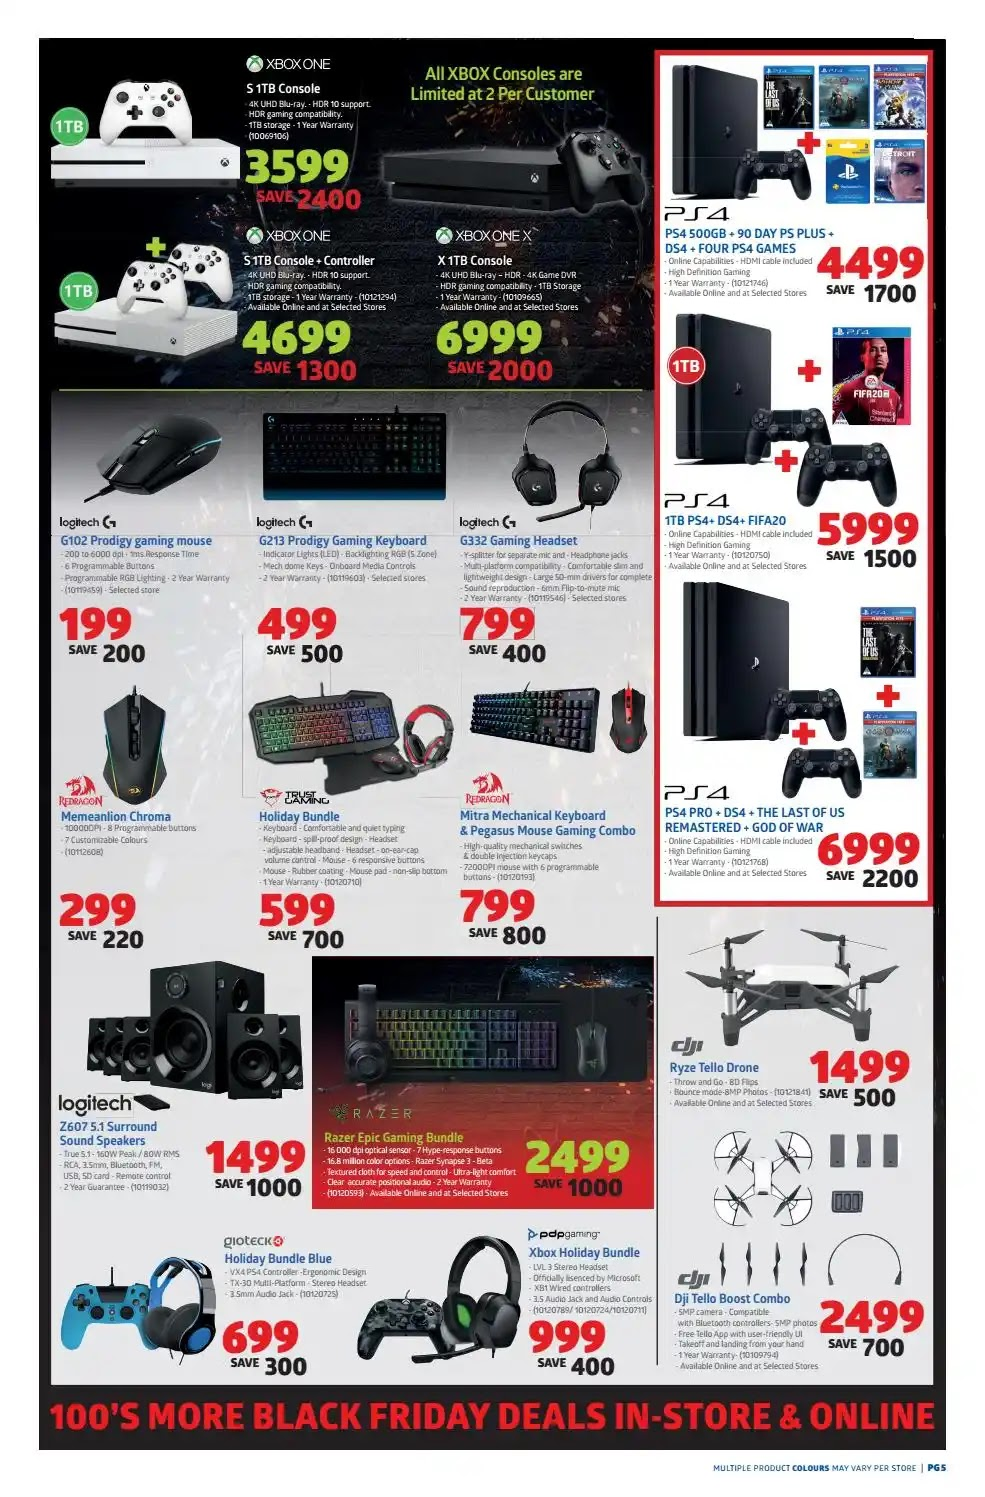 Incredible Connection Black Friday Deals  -  Page 5